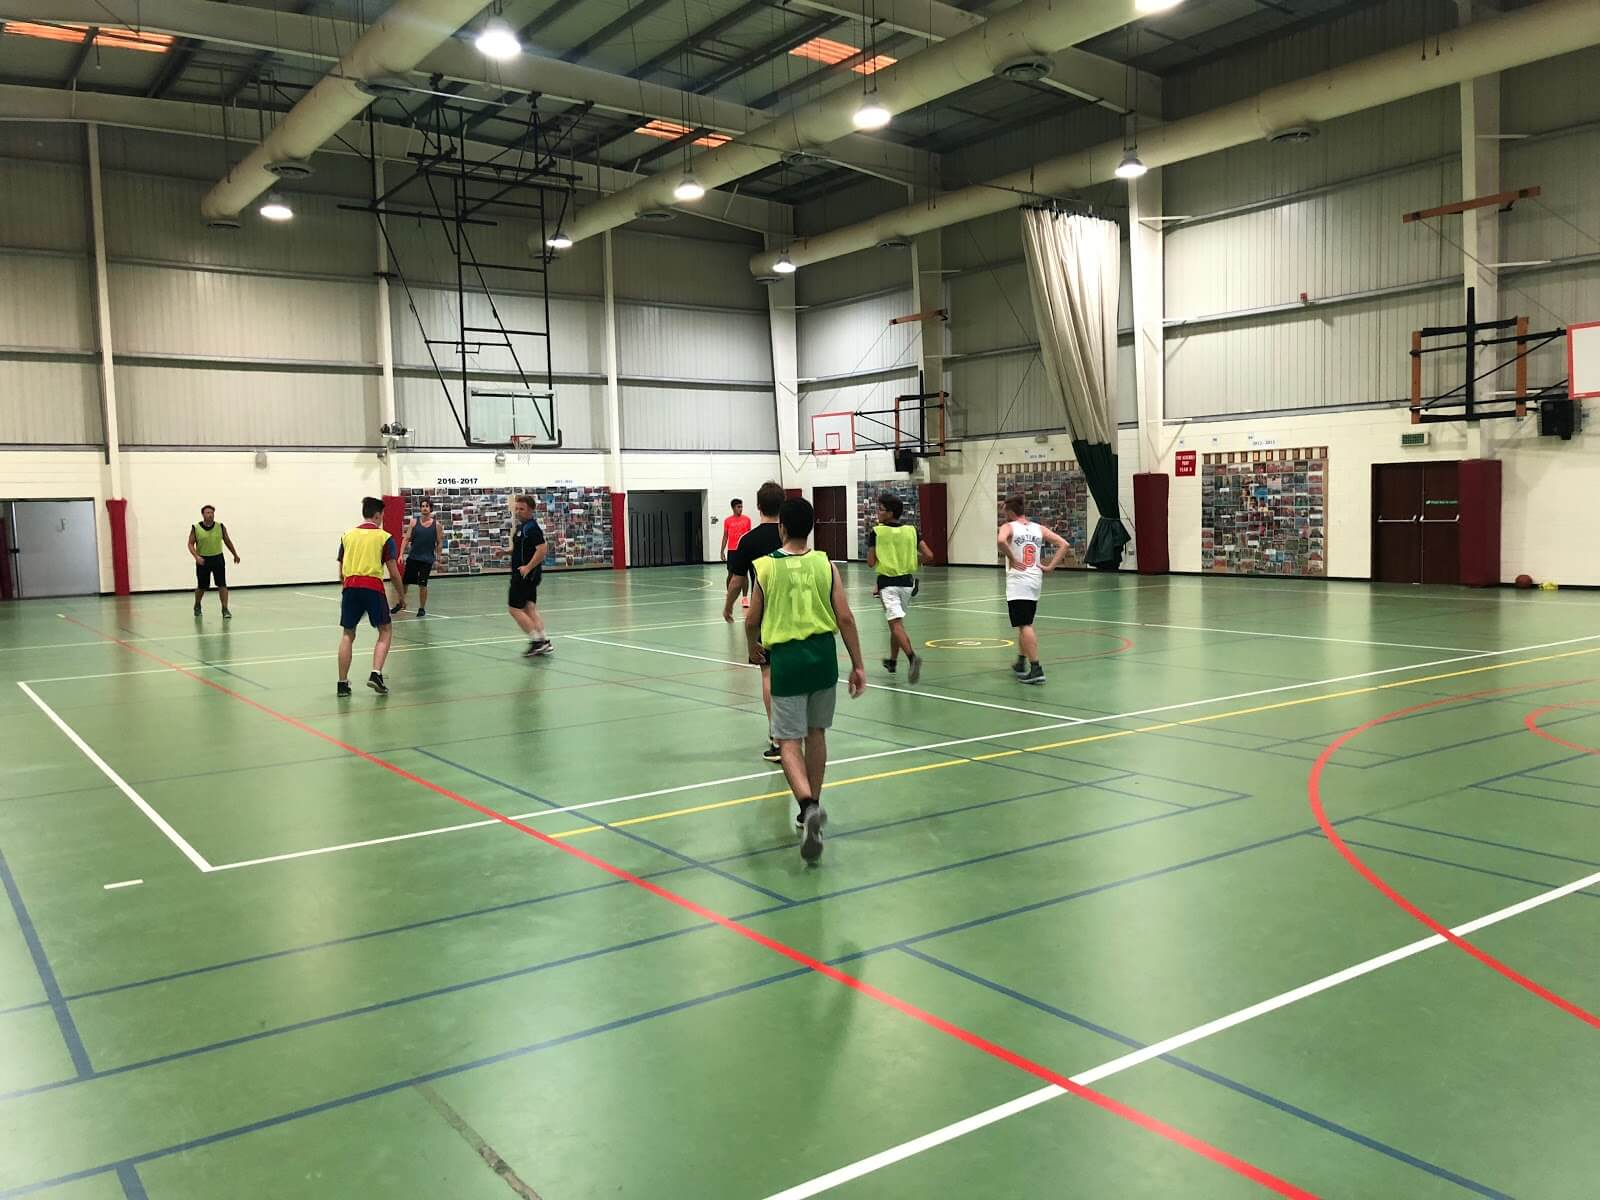 Students & Staff Basketball: The Sports Hall is also used for extra-curricular activities after school. Sometimes, at the end of the week, our teachers invite us to join them in a friendly game of basketball. This tradition has been ongoing since Year 12, even during the summer. This activity gave me the opportunity to create great friendships with the previous Year 13 group that would have never been possible otherwise. I've also gained a more personal relationship with teachers outside of our classroom.